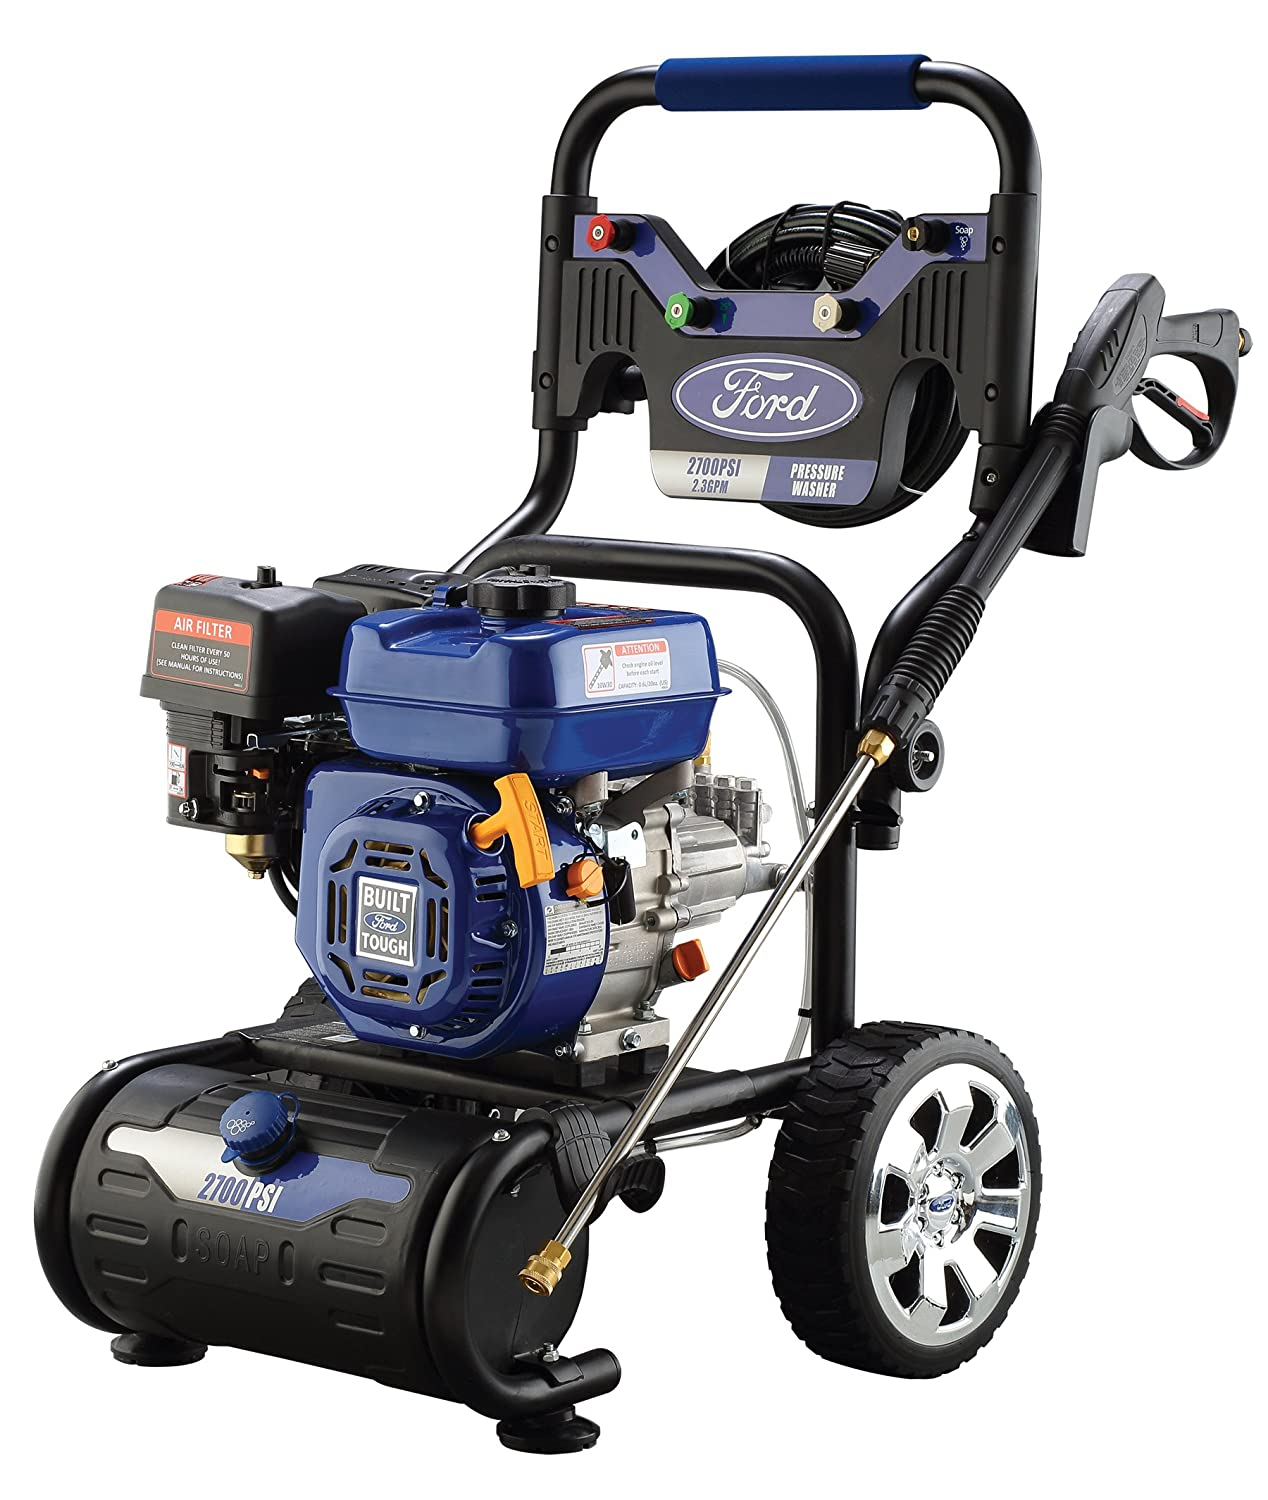 Amazon.com : Ford 2, 700 PSI Gas-Powered Pressure Washer with Built-in Soap  Tank, FPWG2700H-J : Garden & Outdoor